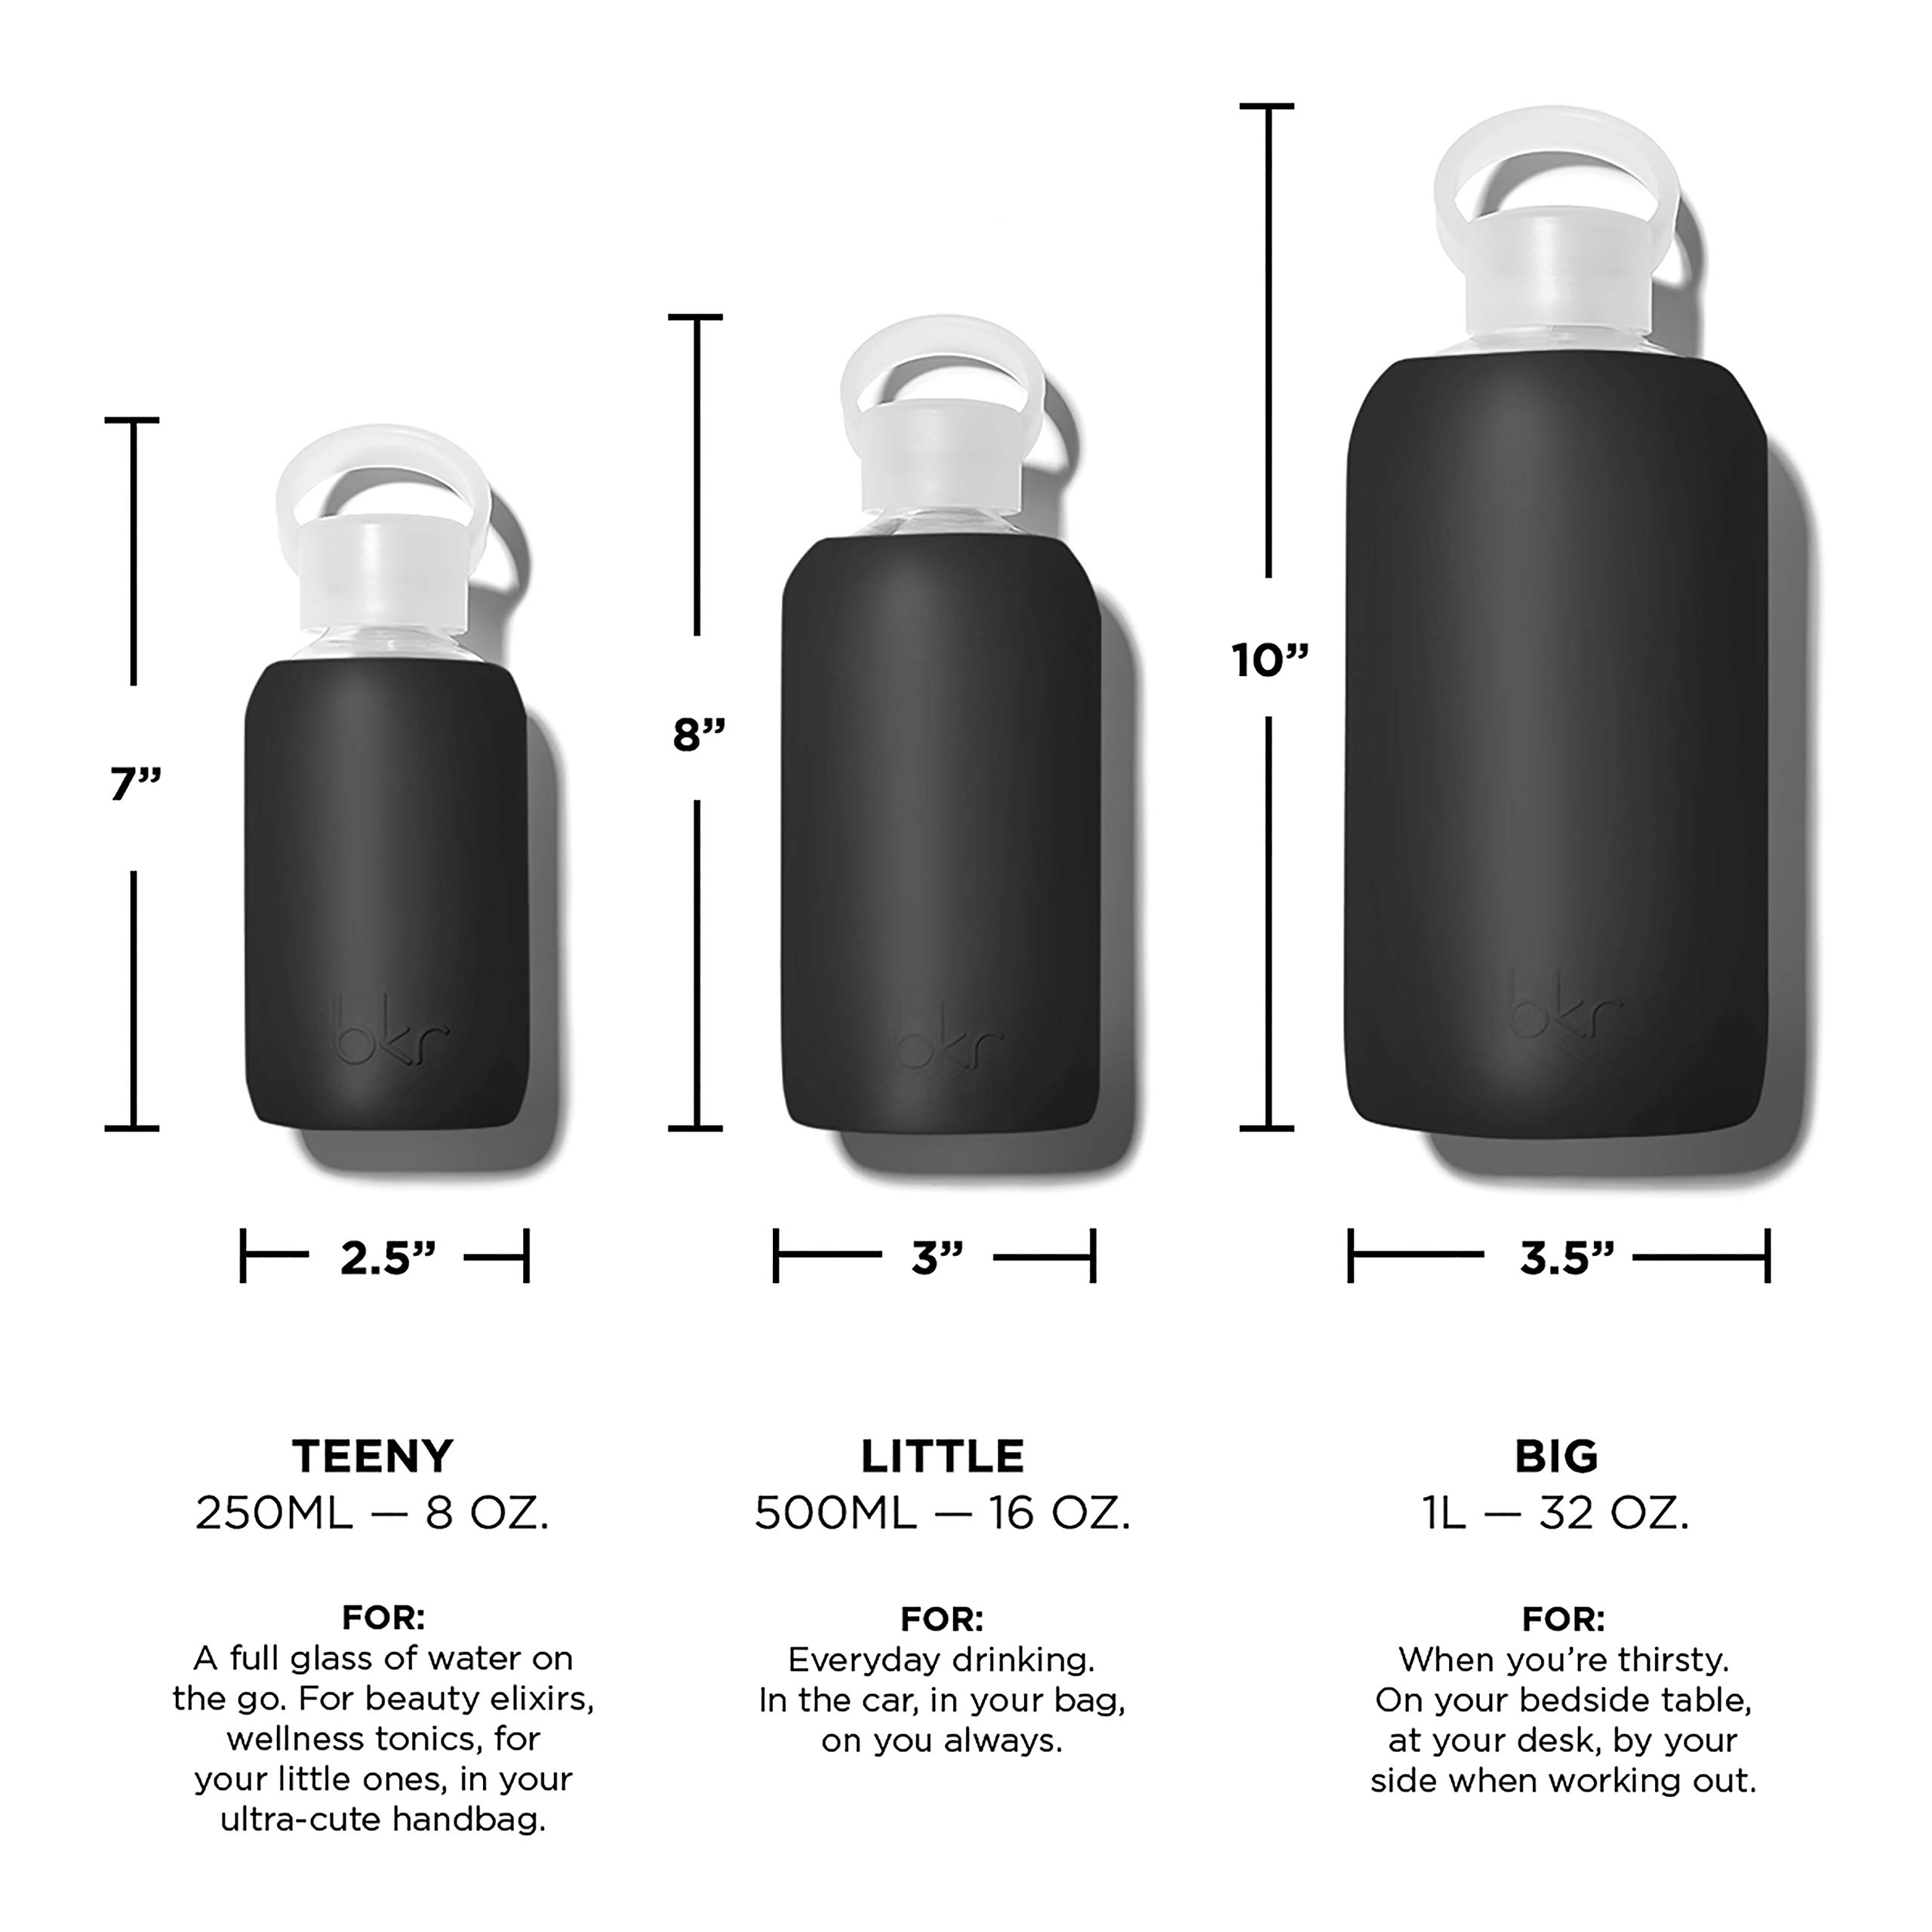 bkr Jet Glass Water Bottle with Smooth Silicone Sleeve for Travel, Narrow Mouth, BPA-Free & Dishwasher Safe, Opaque Black, 8 oz / 250 mL